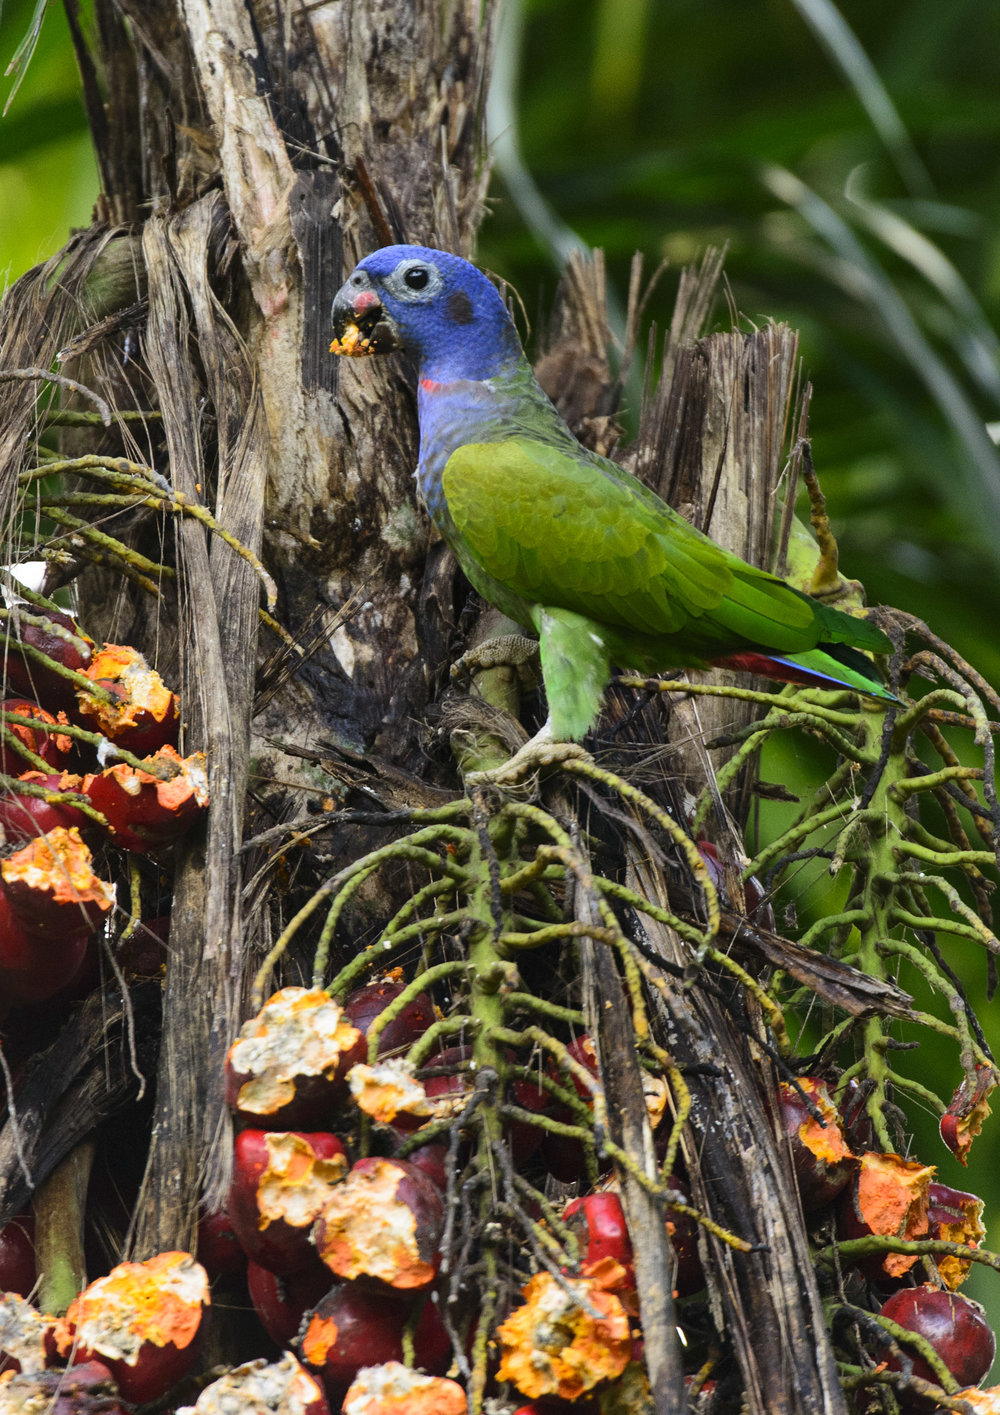 Blue-headed Parrot (Pionus menstruus) feeding on palm fruit in the Peruvian Amazon, 03/14/ Cropped